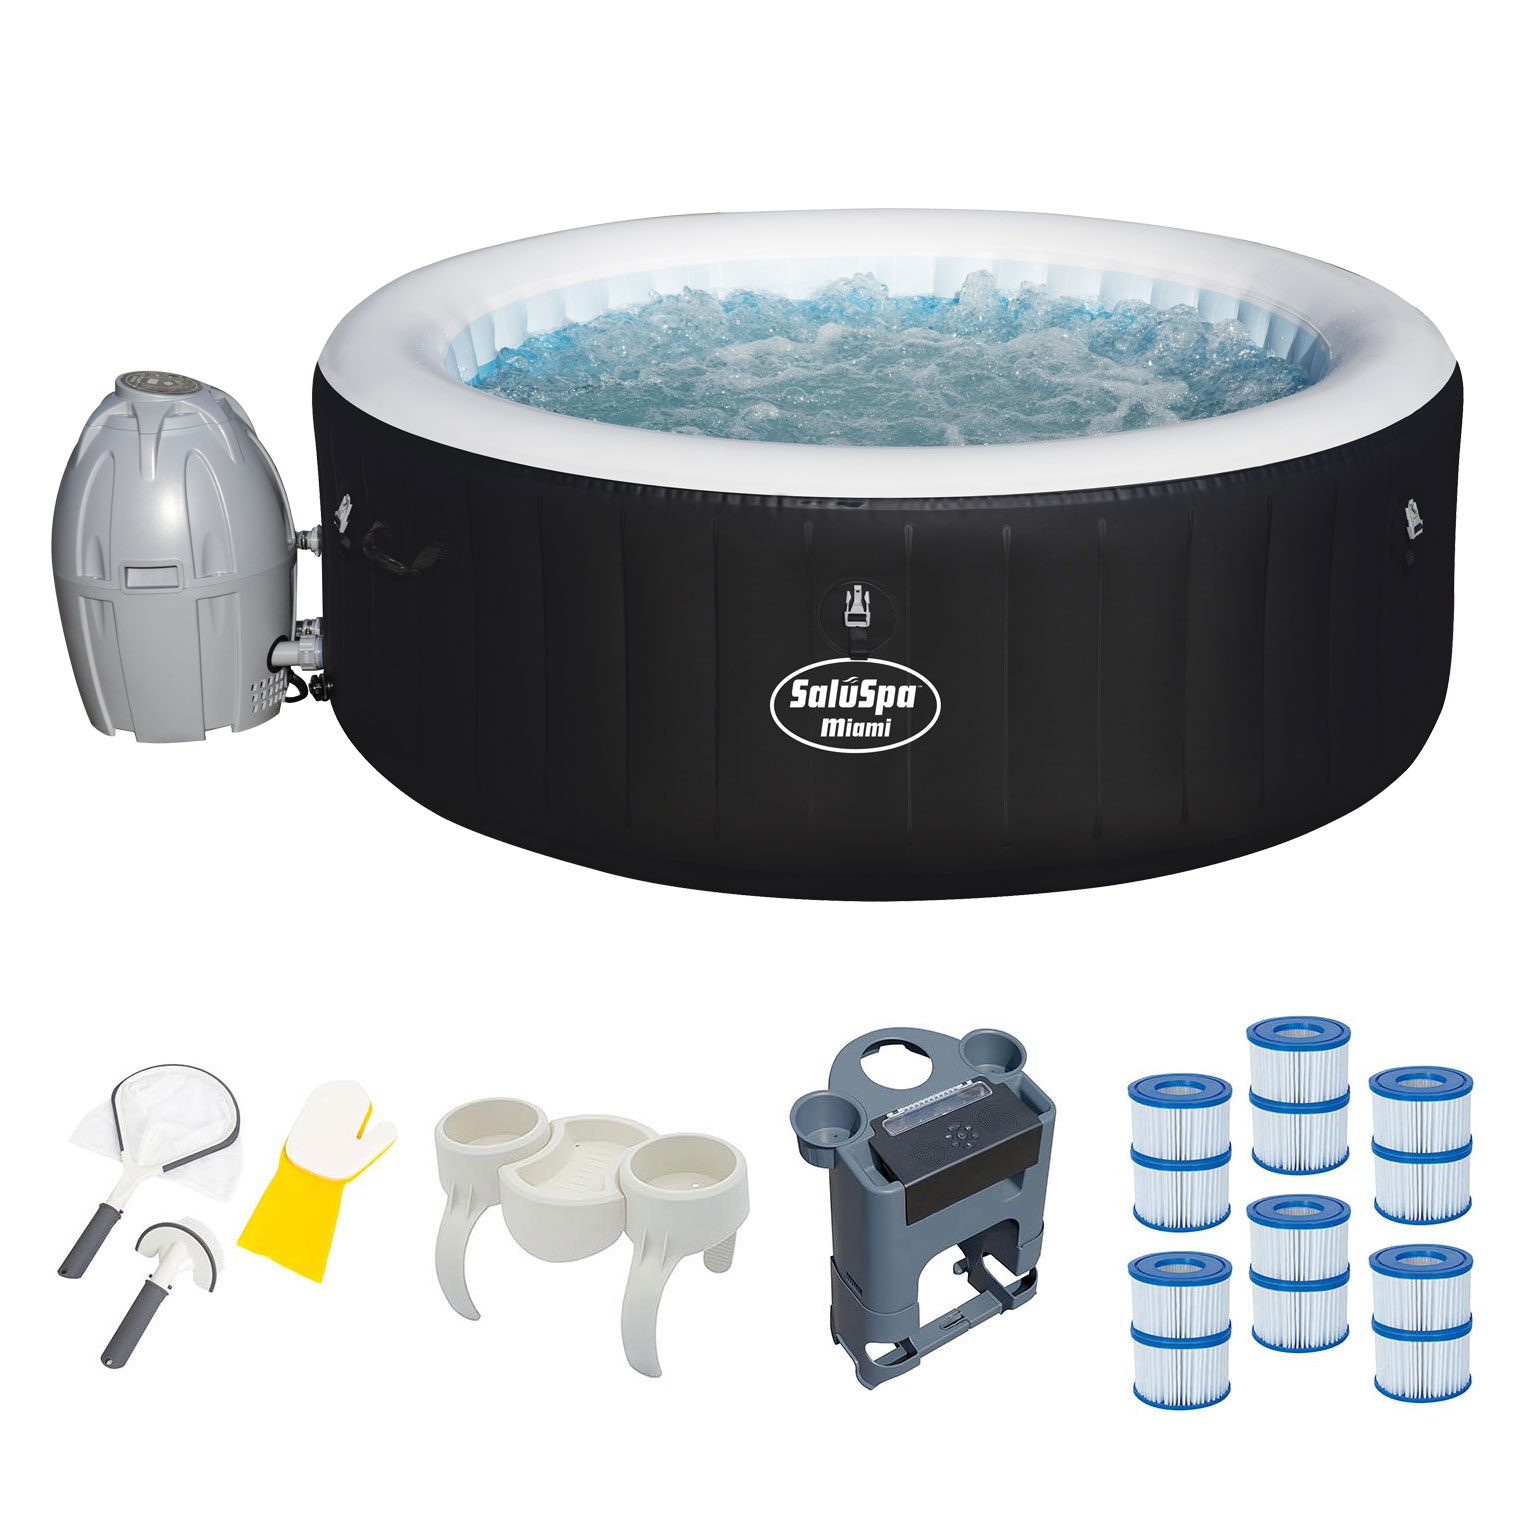 Bestway Inflatable Hot Tub + Entertainment Center + 6 Filters + Cleaning Set by Bestway